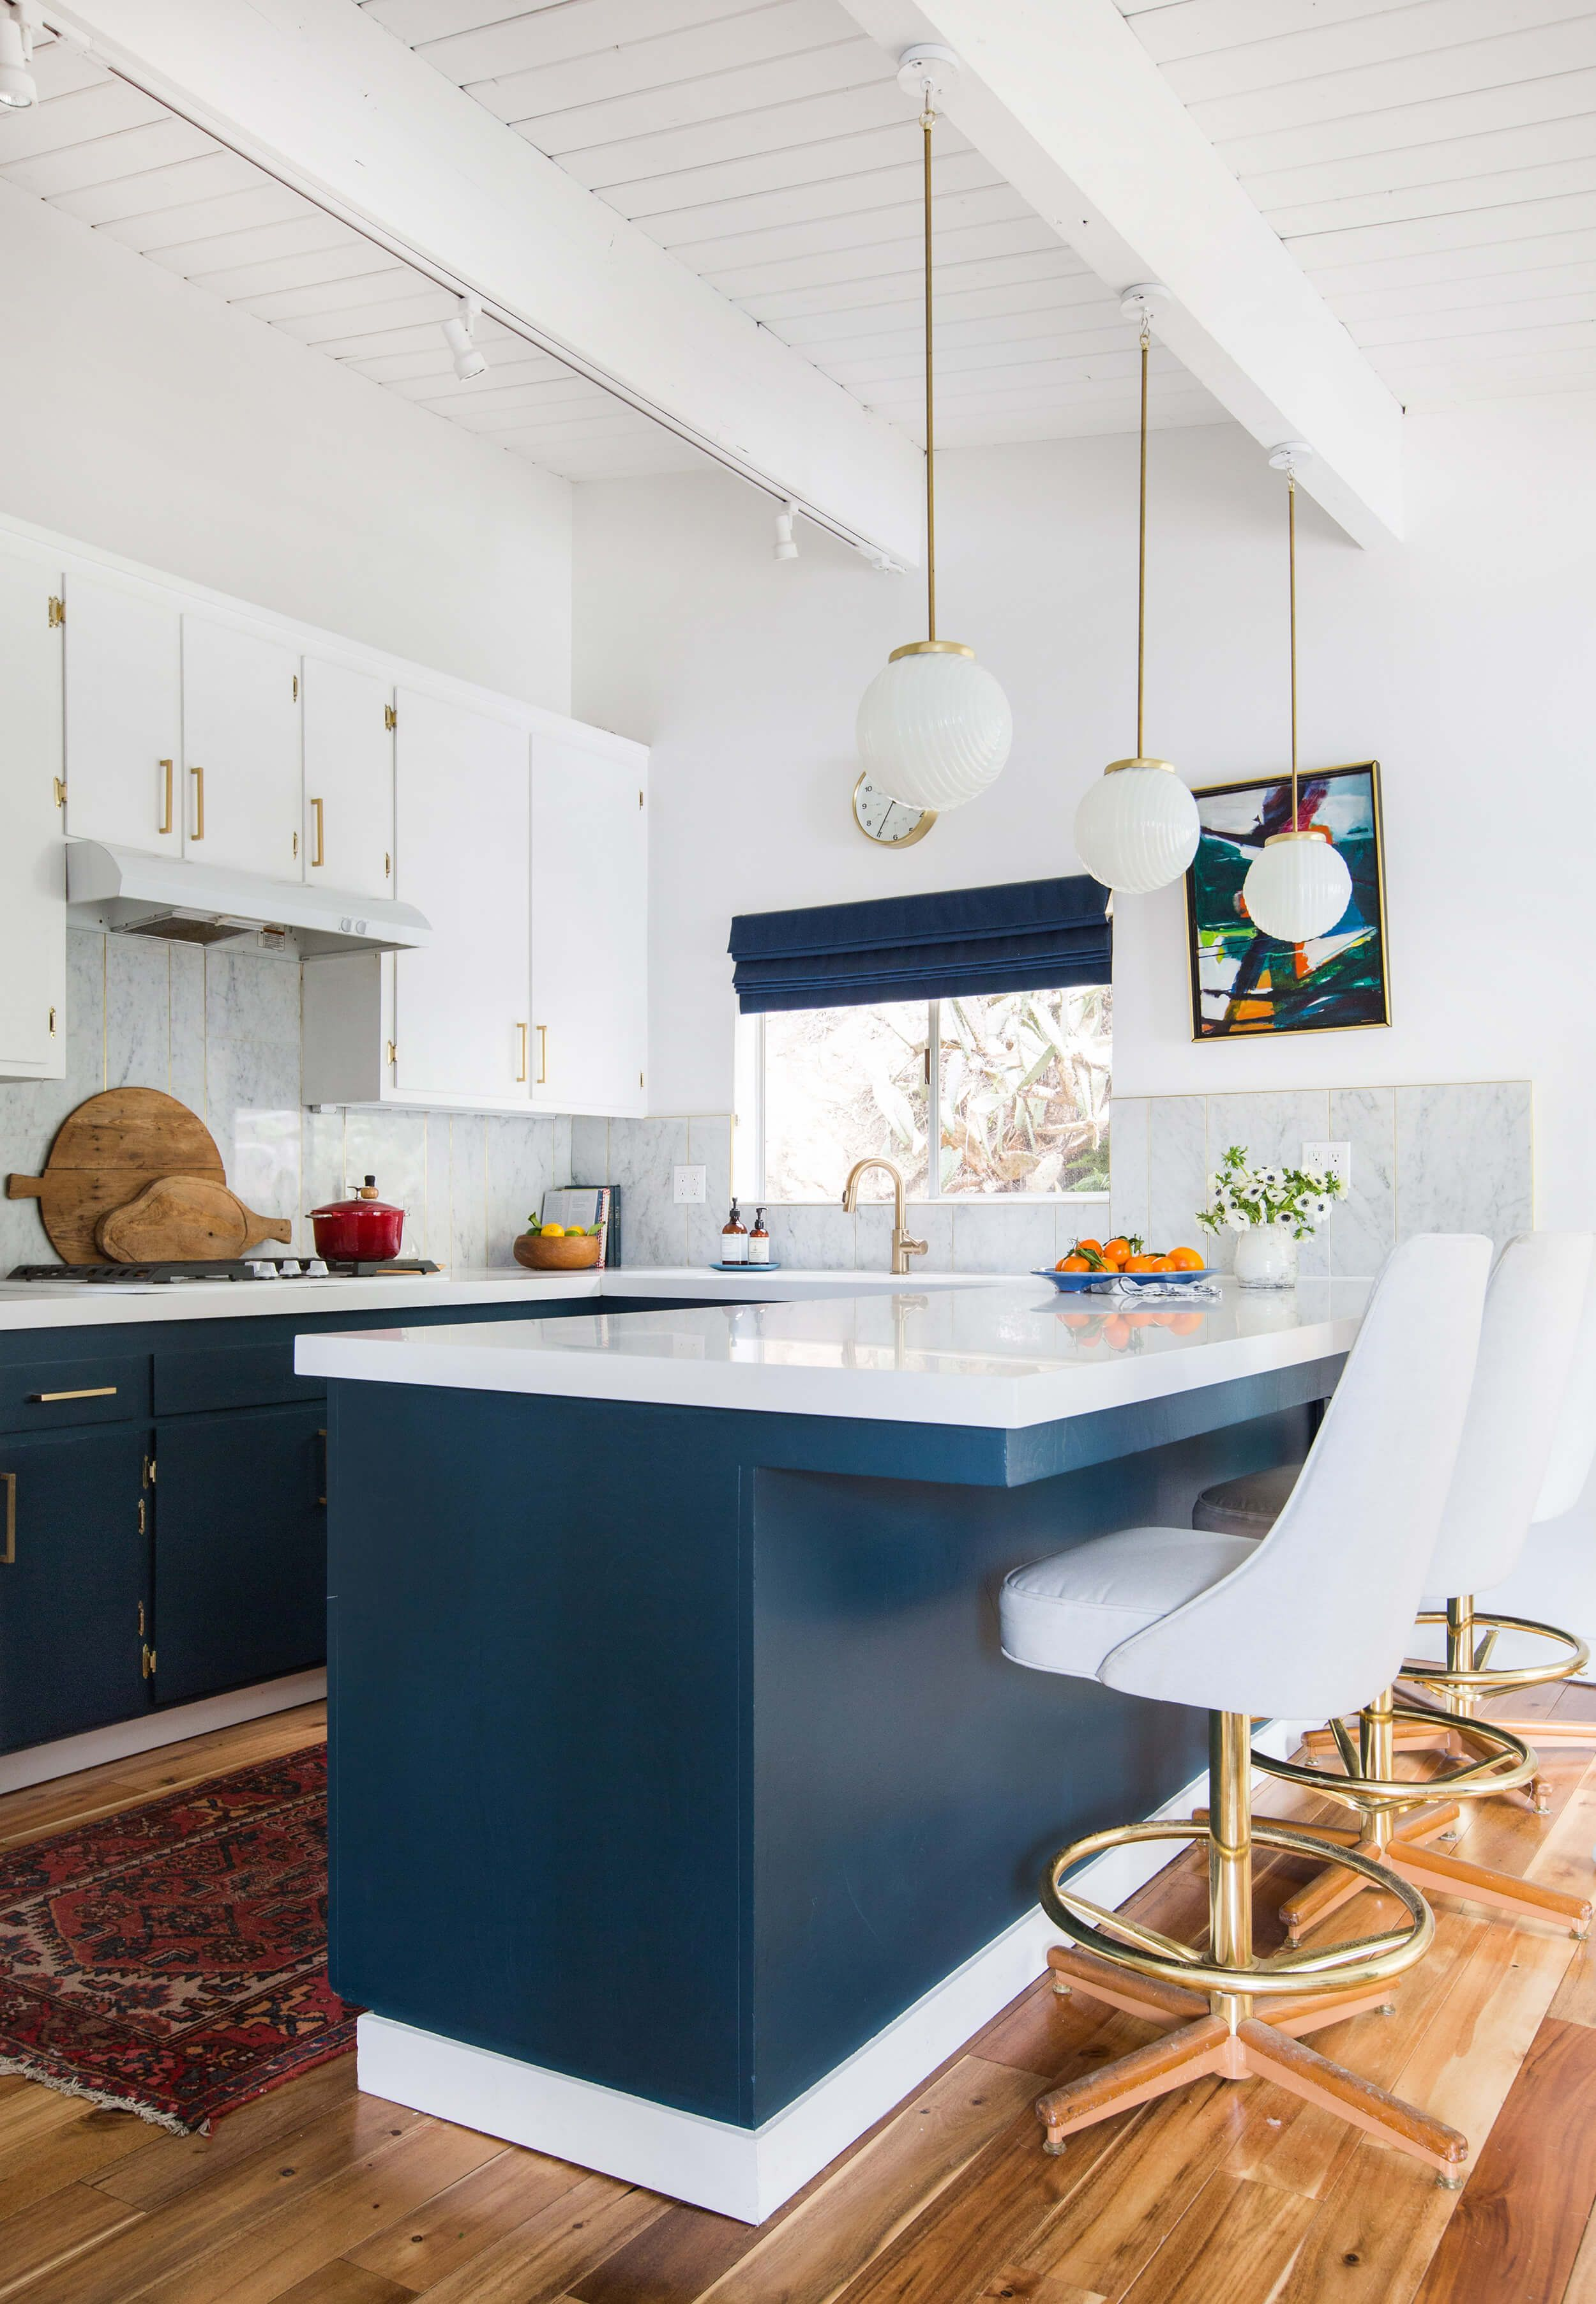 Hague Blue by Farrow & Ball: Hands down the best navy blue on the ...